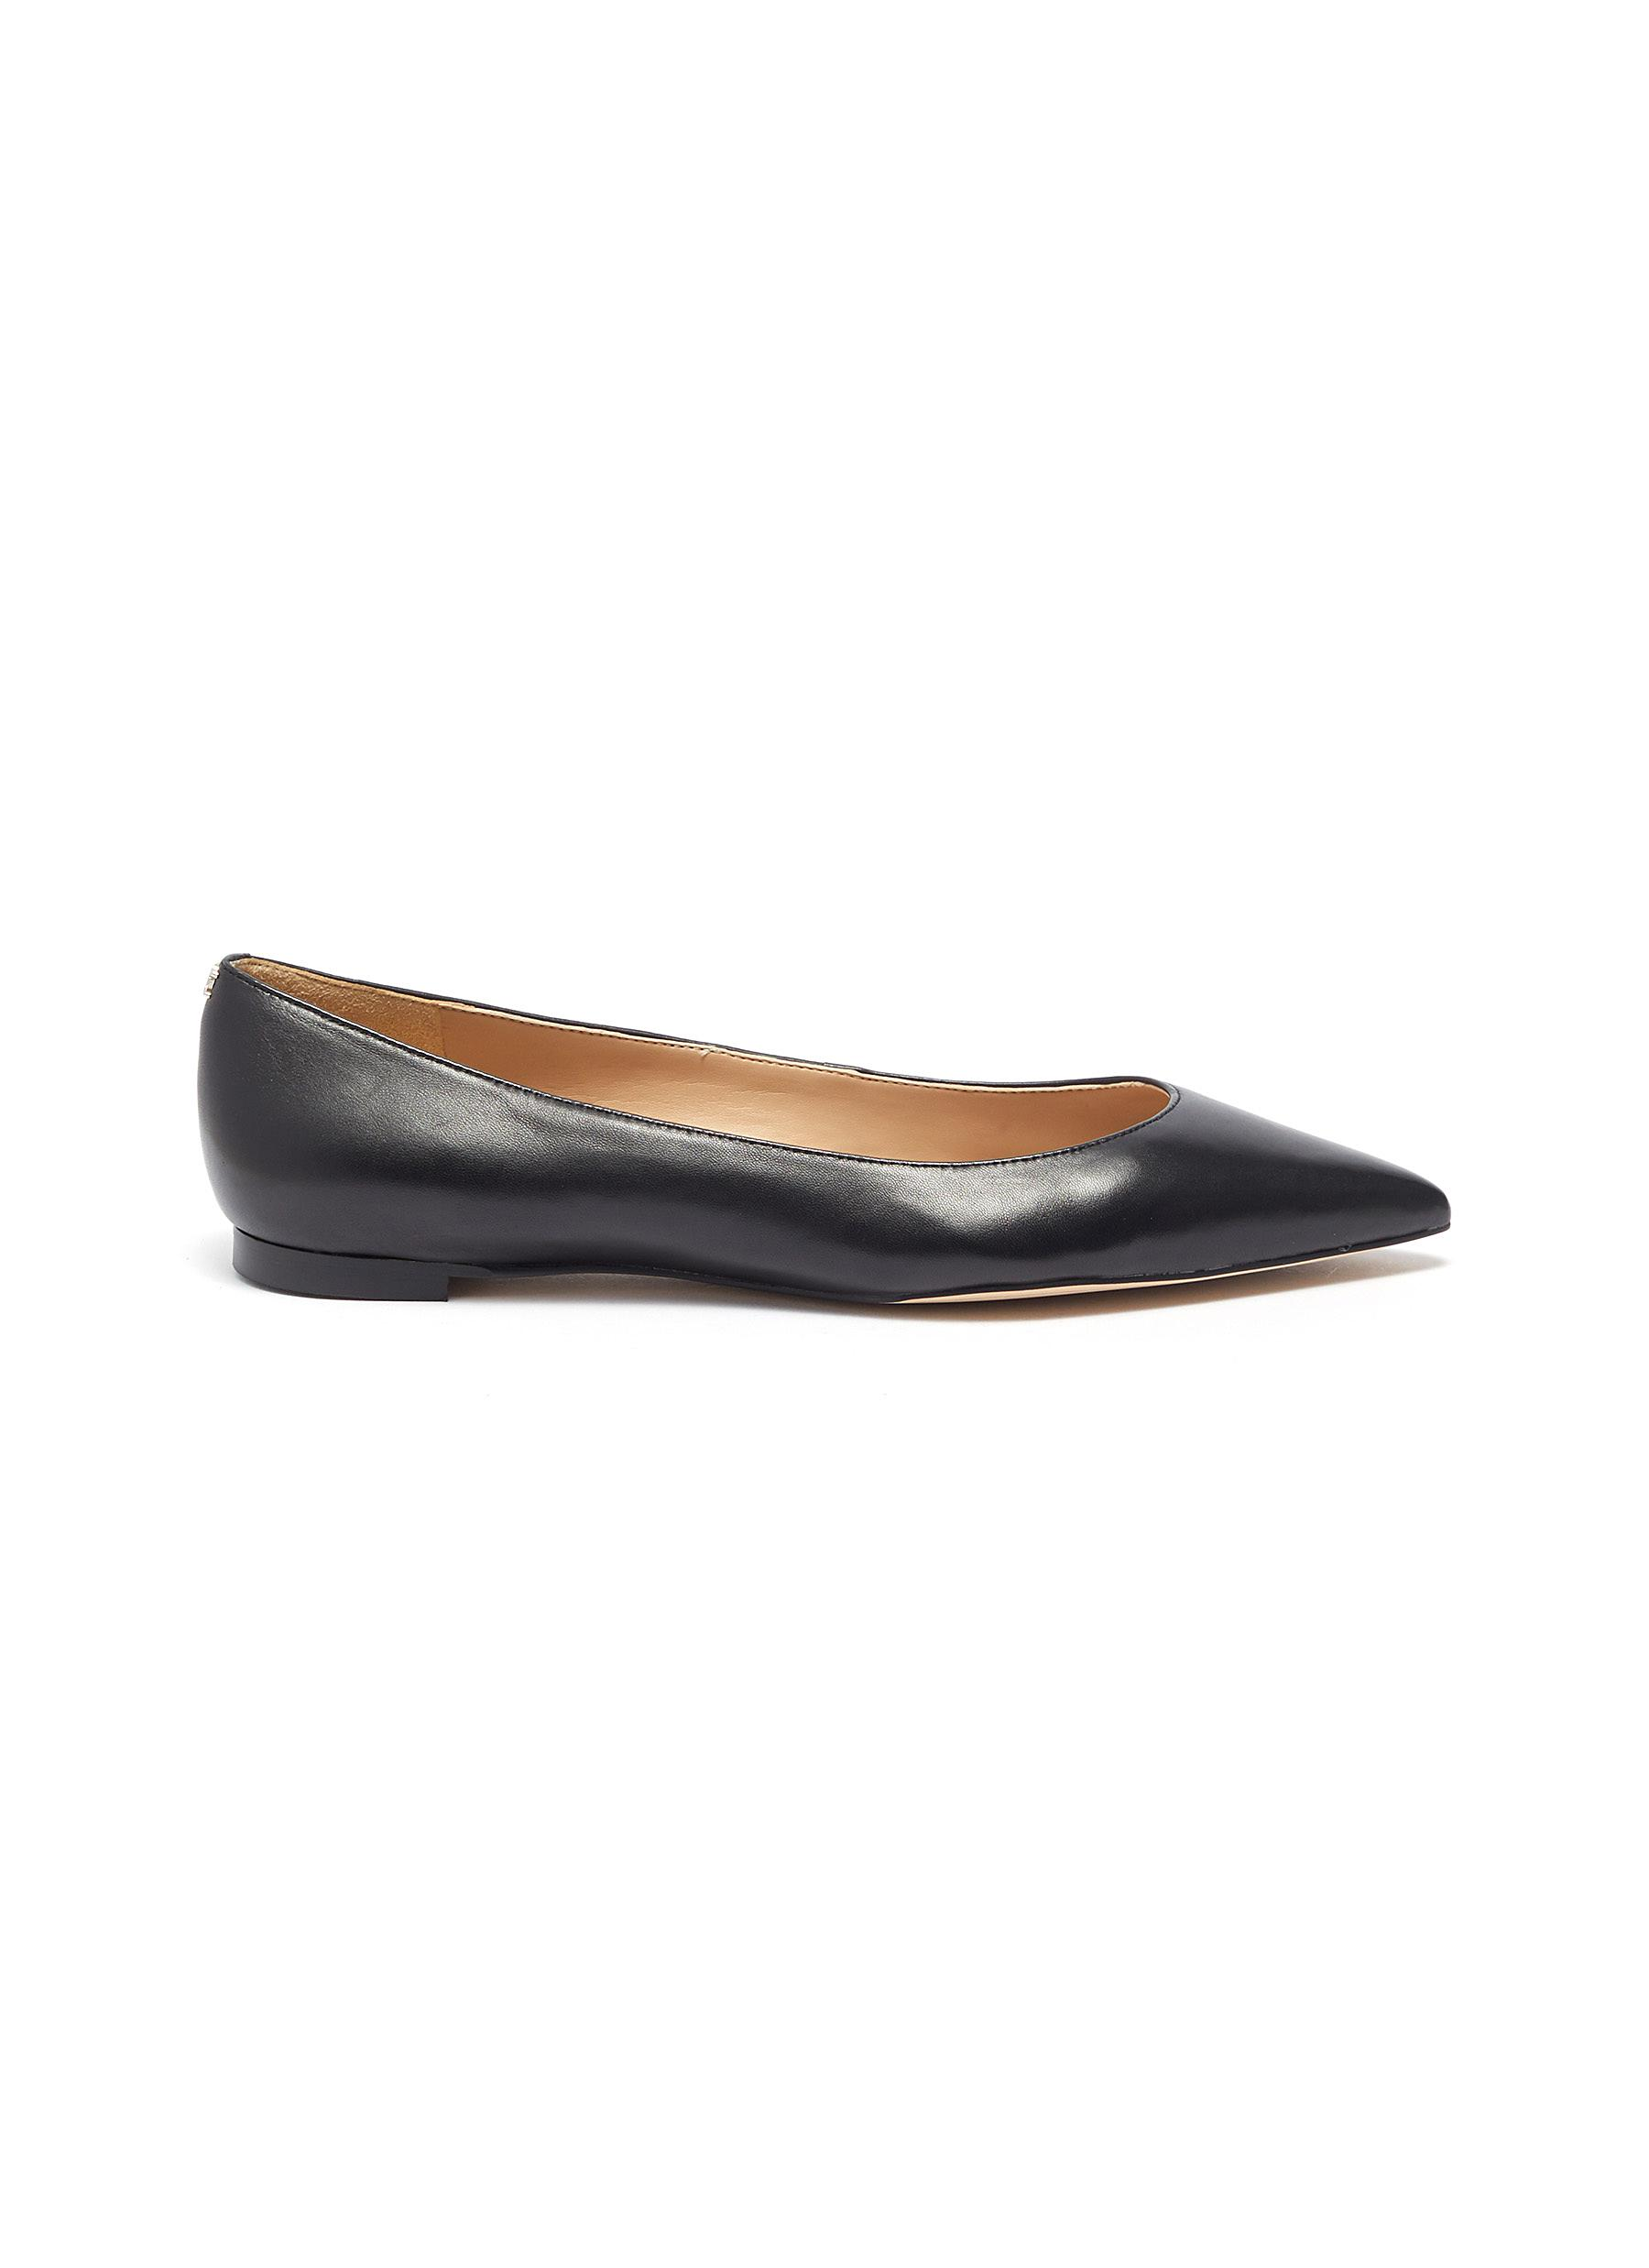 Sally leather skimmer flats by Sam Edelman